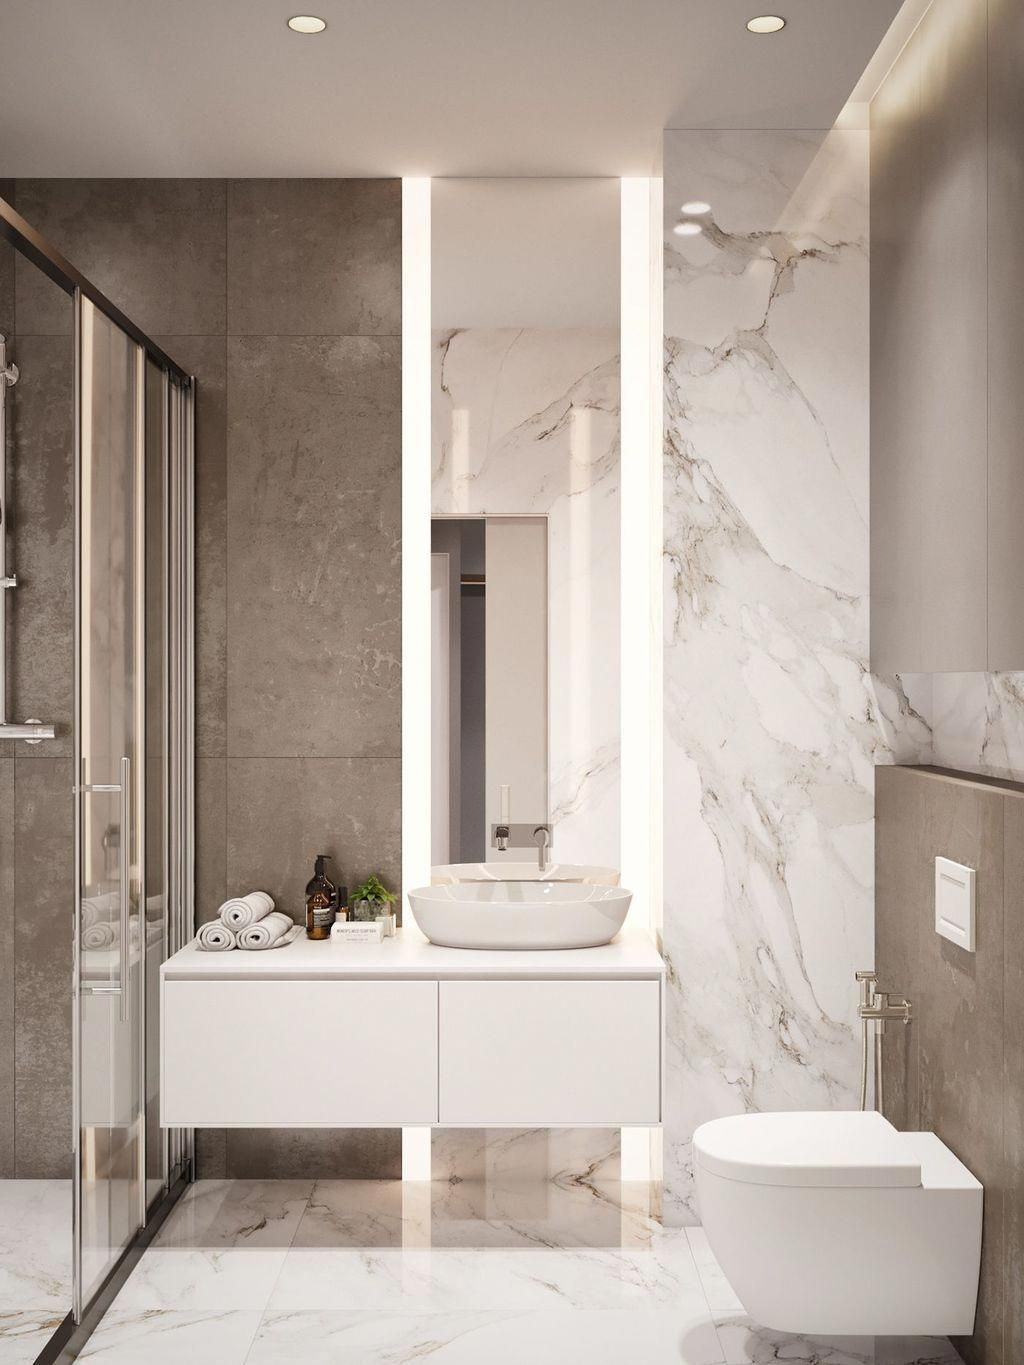 Bathroom Interior Design Catalogue Pdf Bathroomdesignpdf Bathroom Interior Design Bathroom Interior Modern Bathroom Design